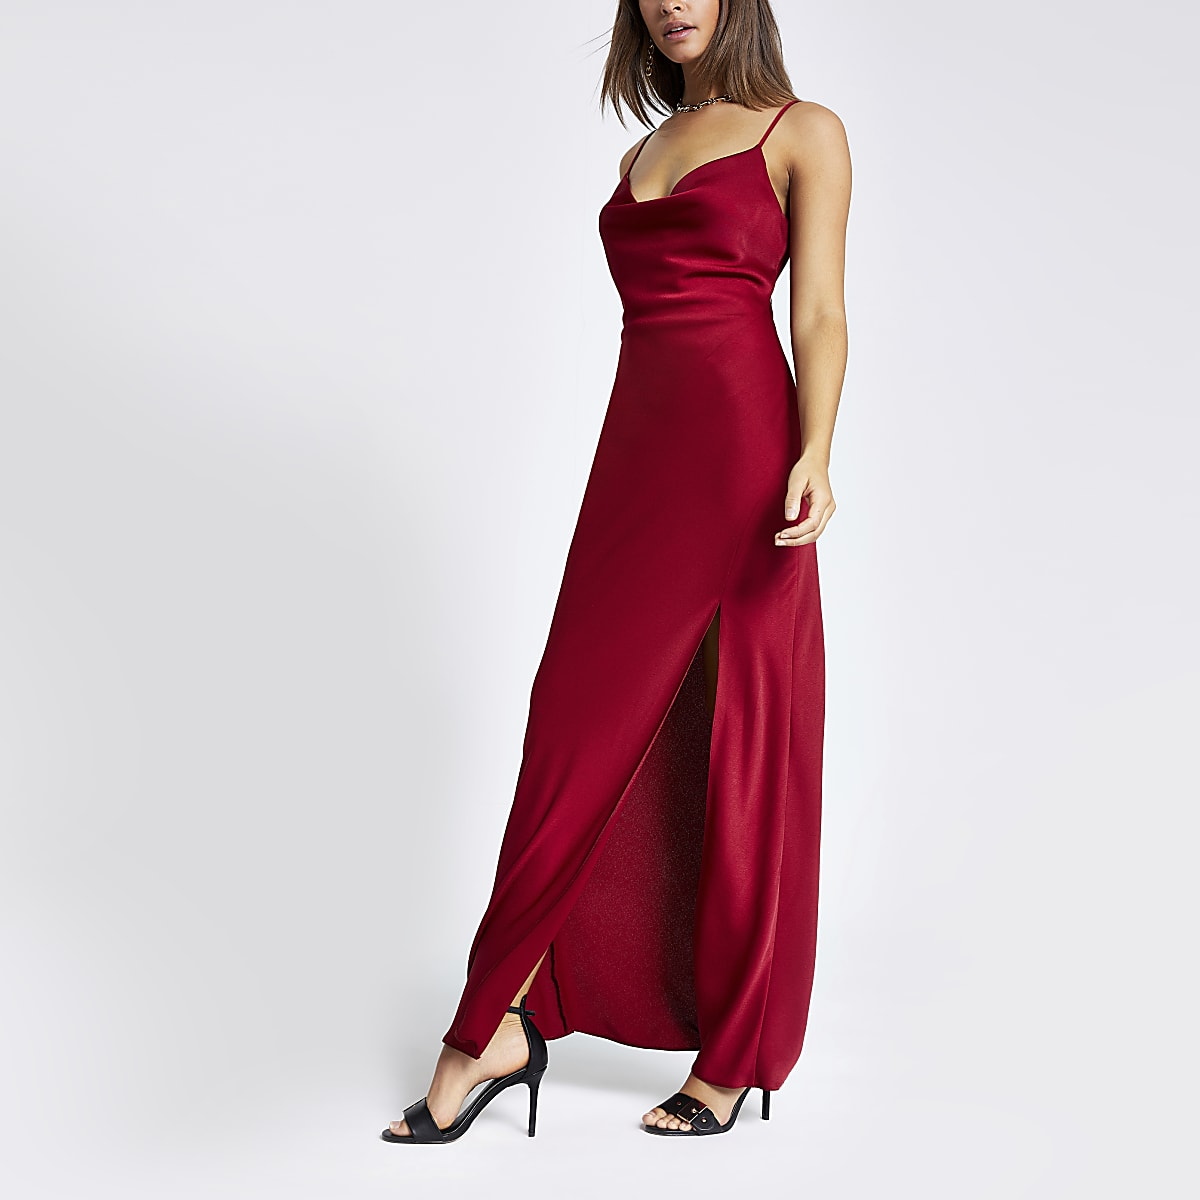 c199b09771f Red cowl neck maxi slip dress - Maxi Dresses - Dresses - women